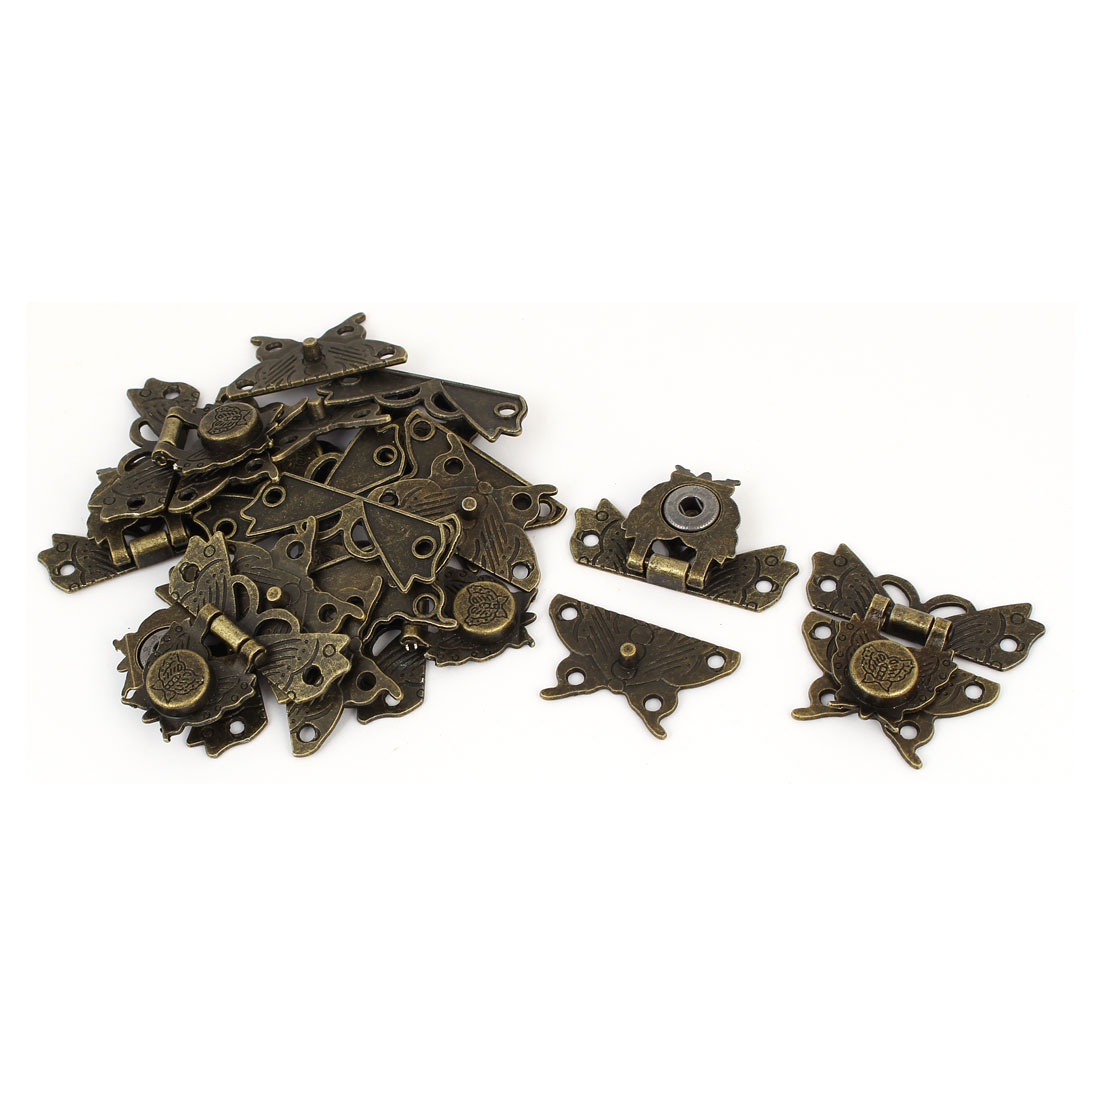 40mm x 51mm x 9mm Spring Draw Toggle Latch 10PCS for Chest Box Cabinet Suitcase